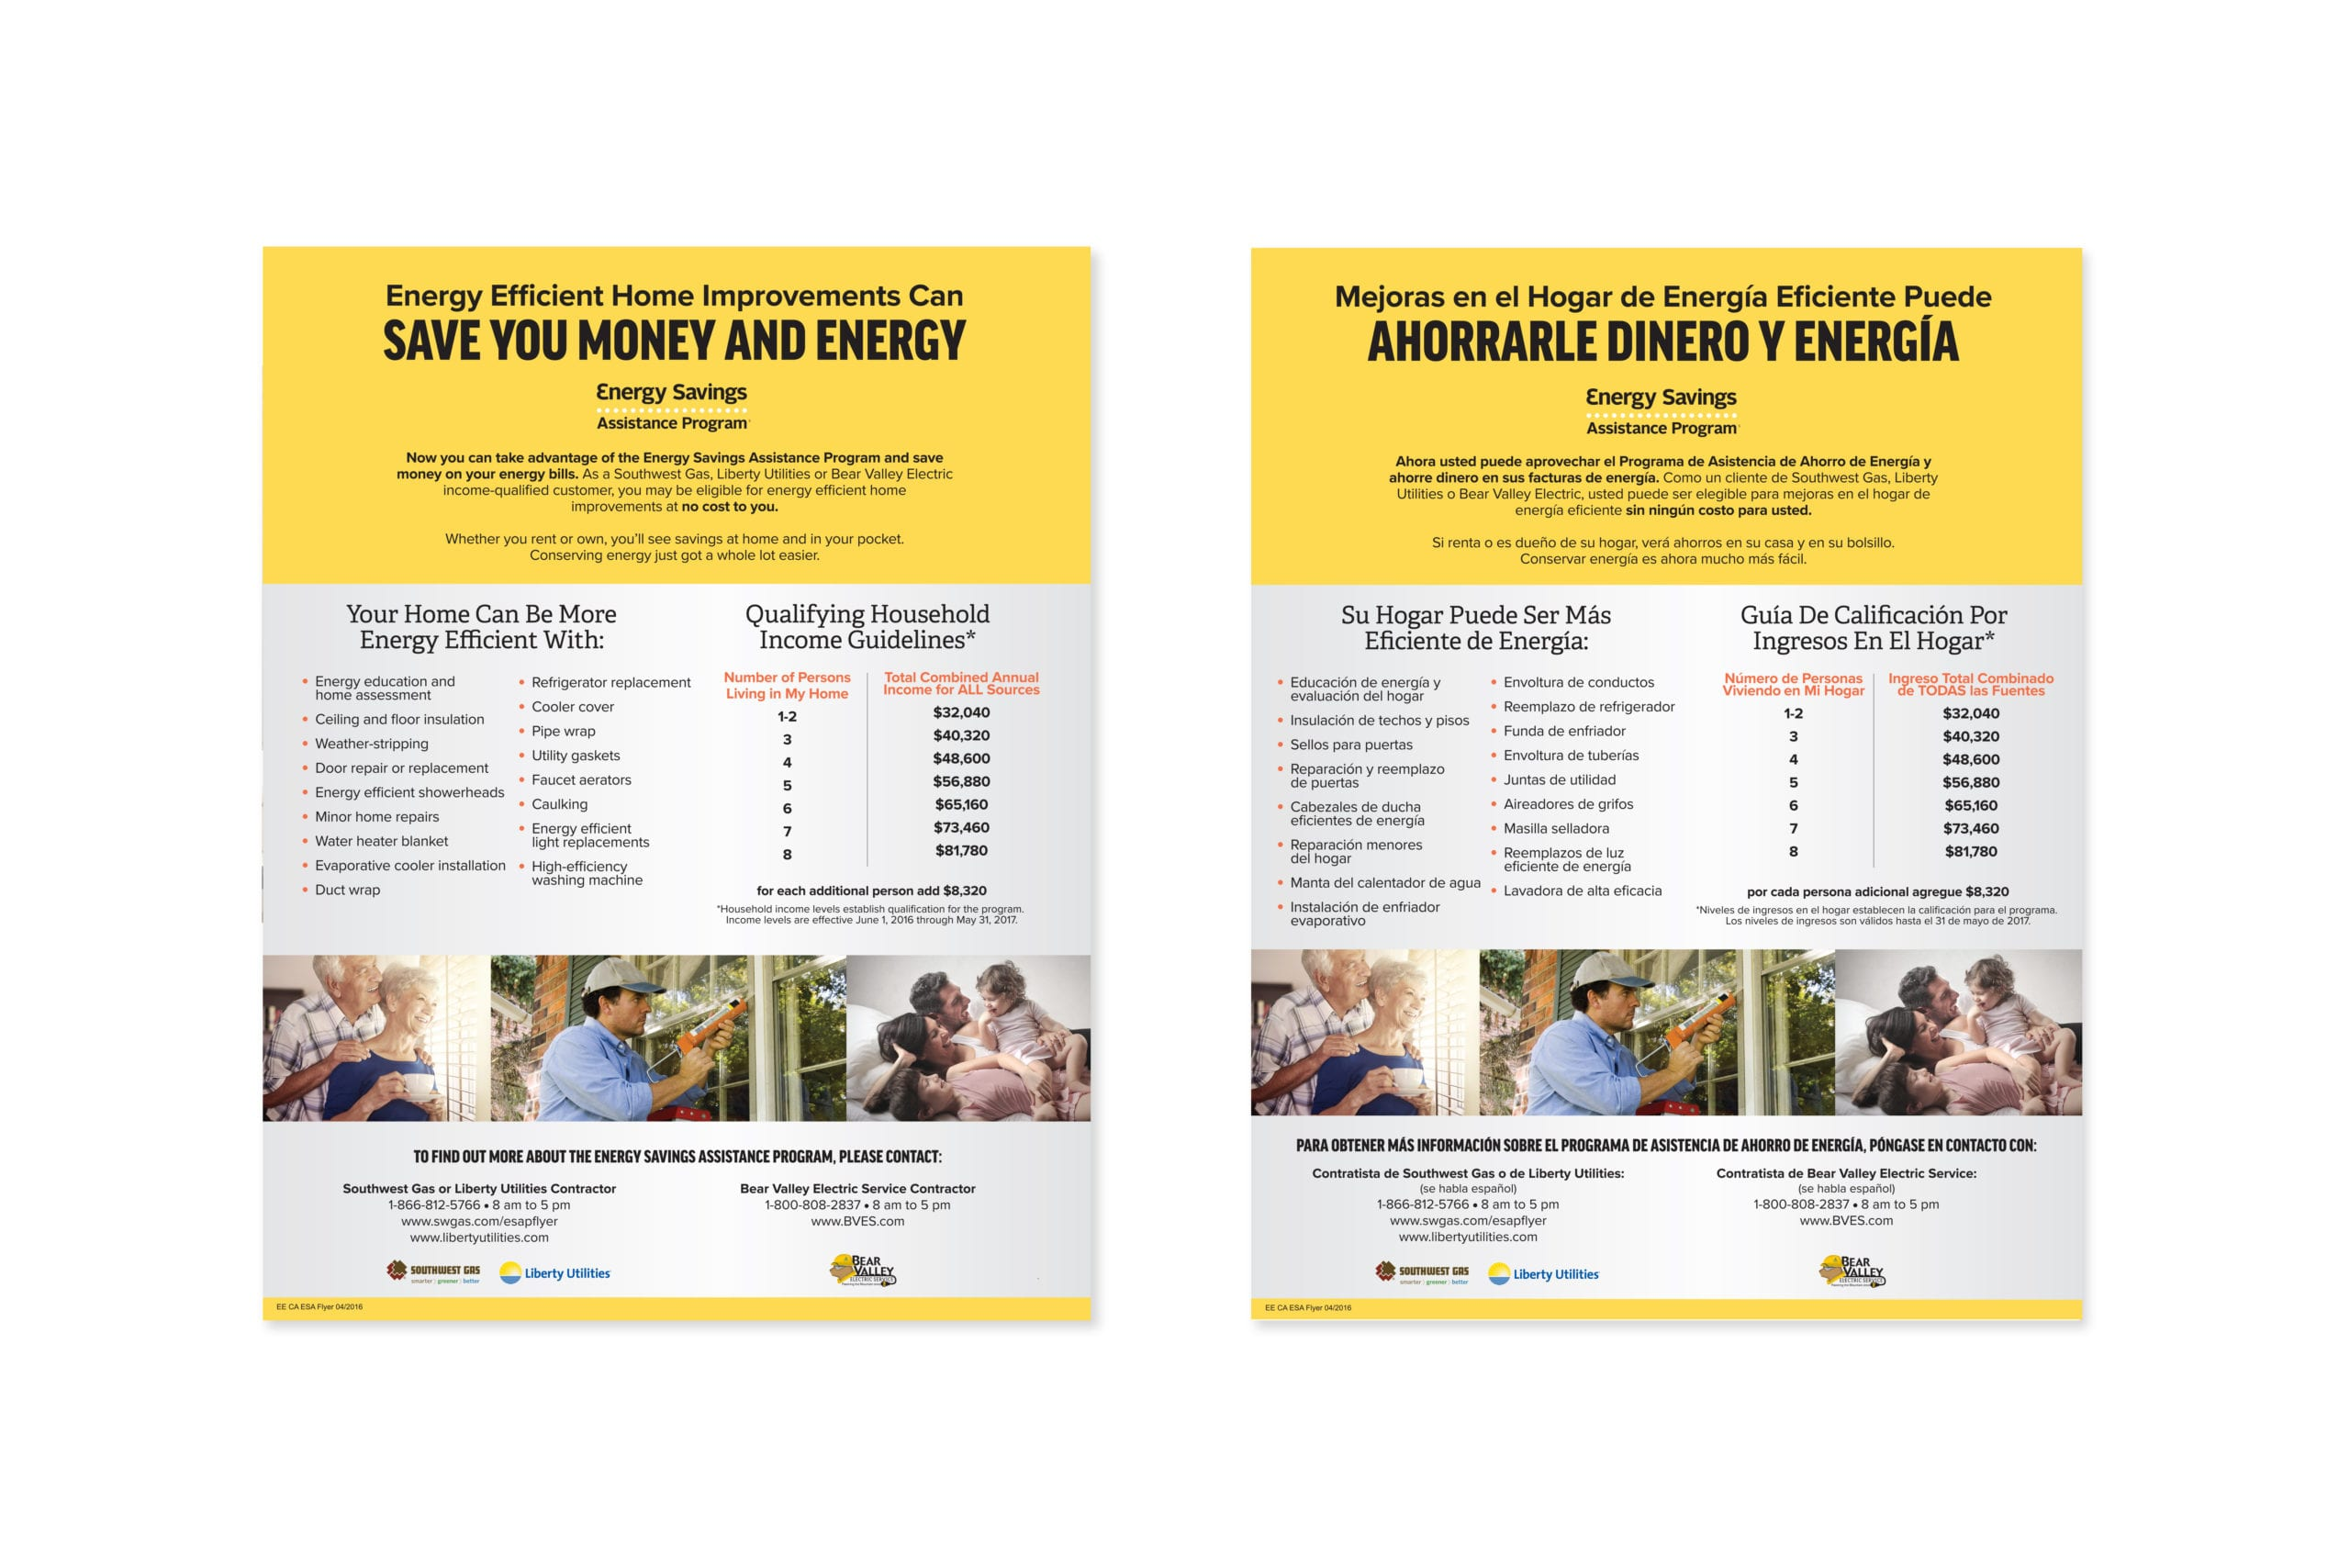 An educational document from Southwest Gas on how to save energy.